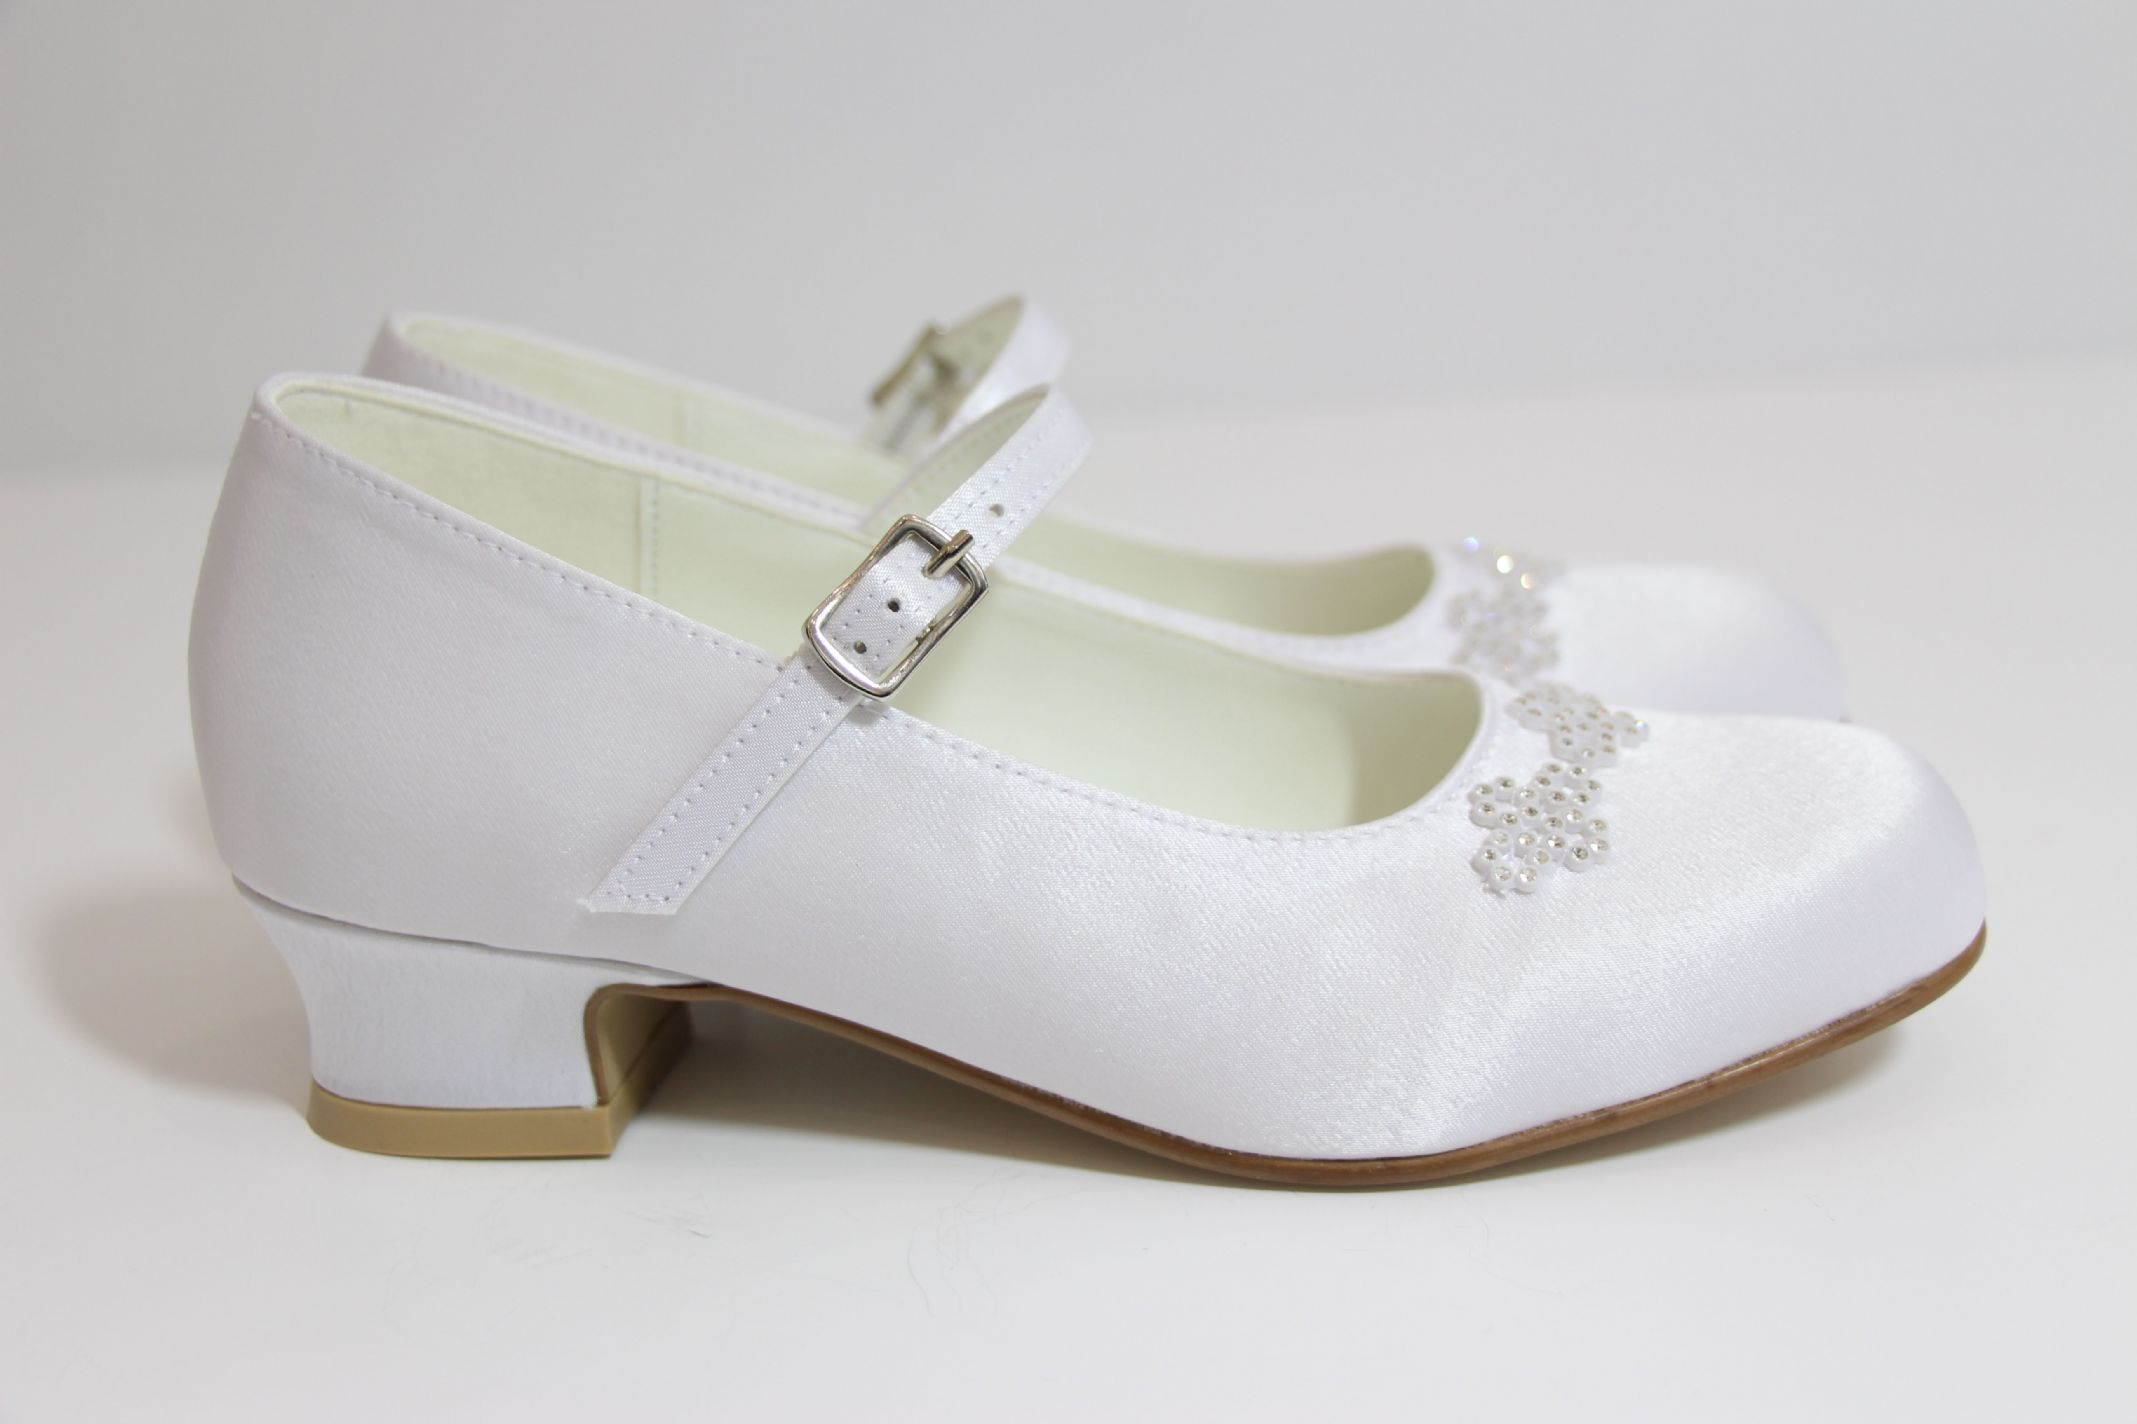 Girls White Satin Communion Shoes with